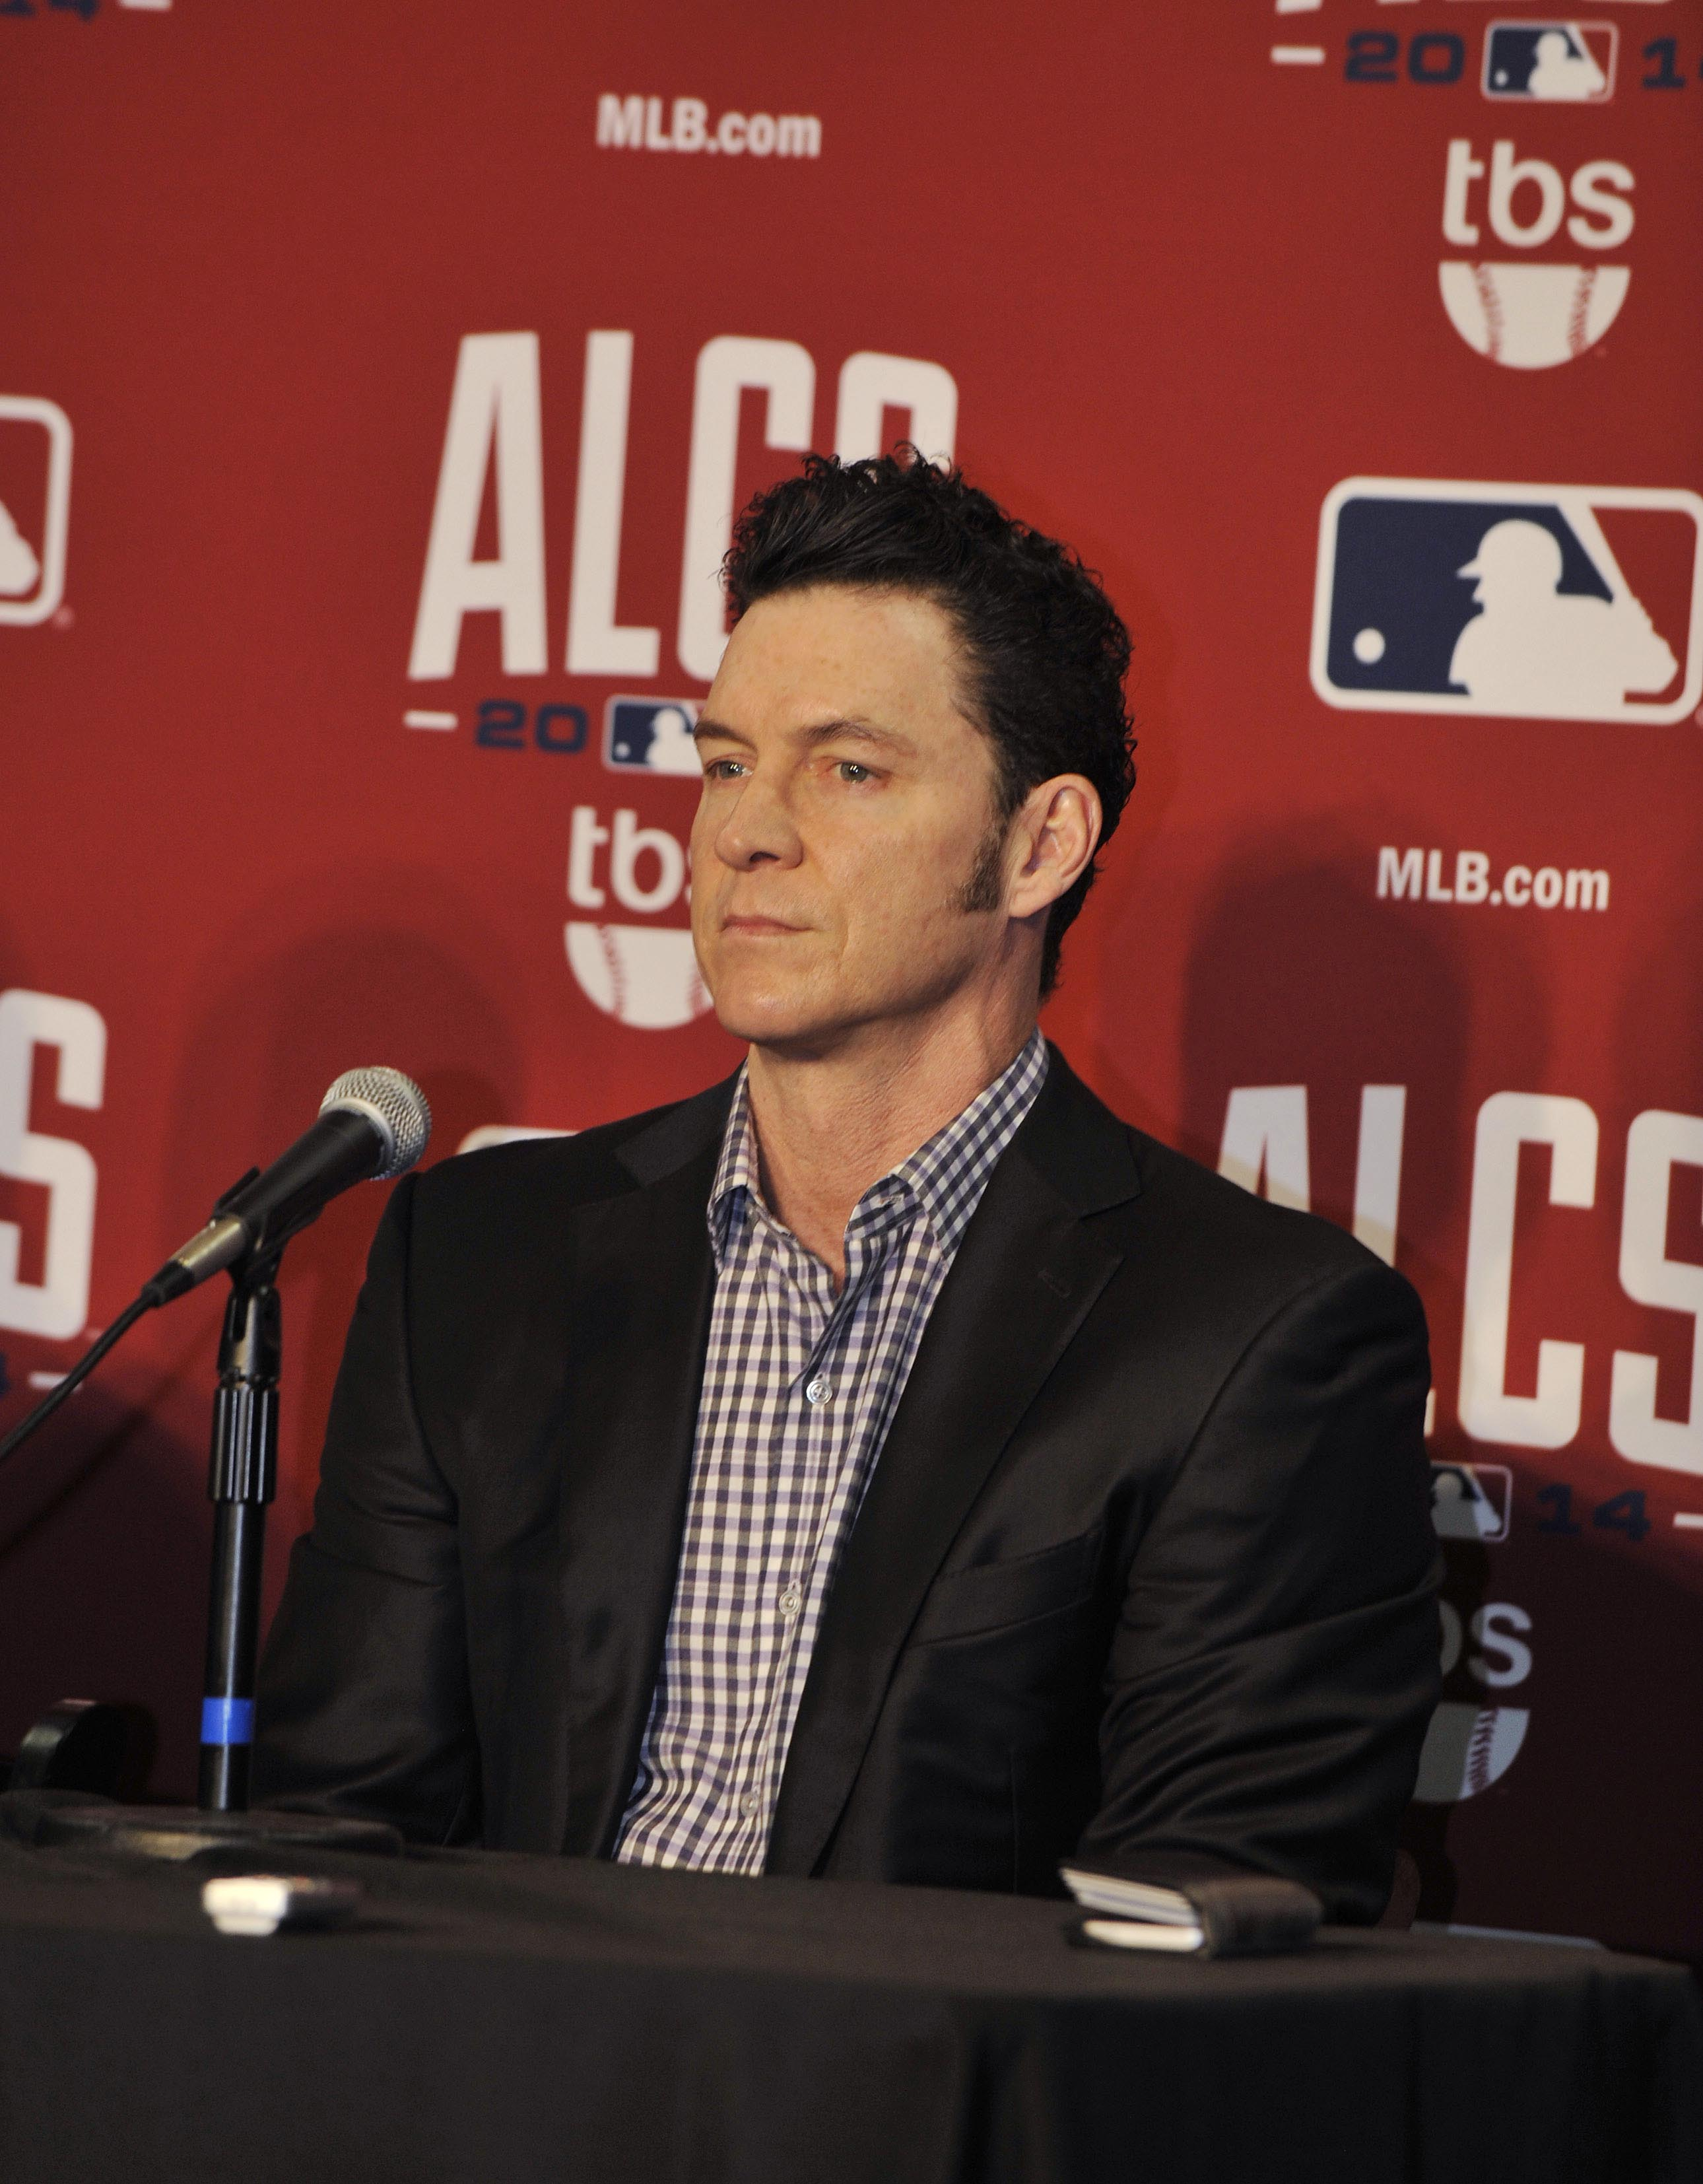 Brady Anderson was described as part of Ripken's posse, but he denies ever hazing anyone. (USA TODAY Sports)